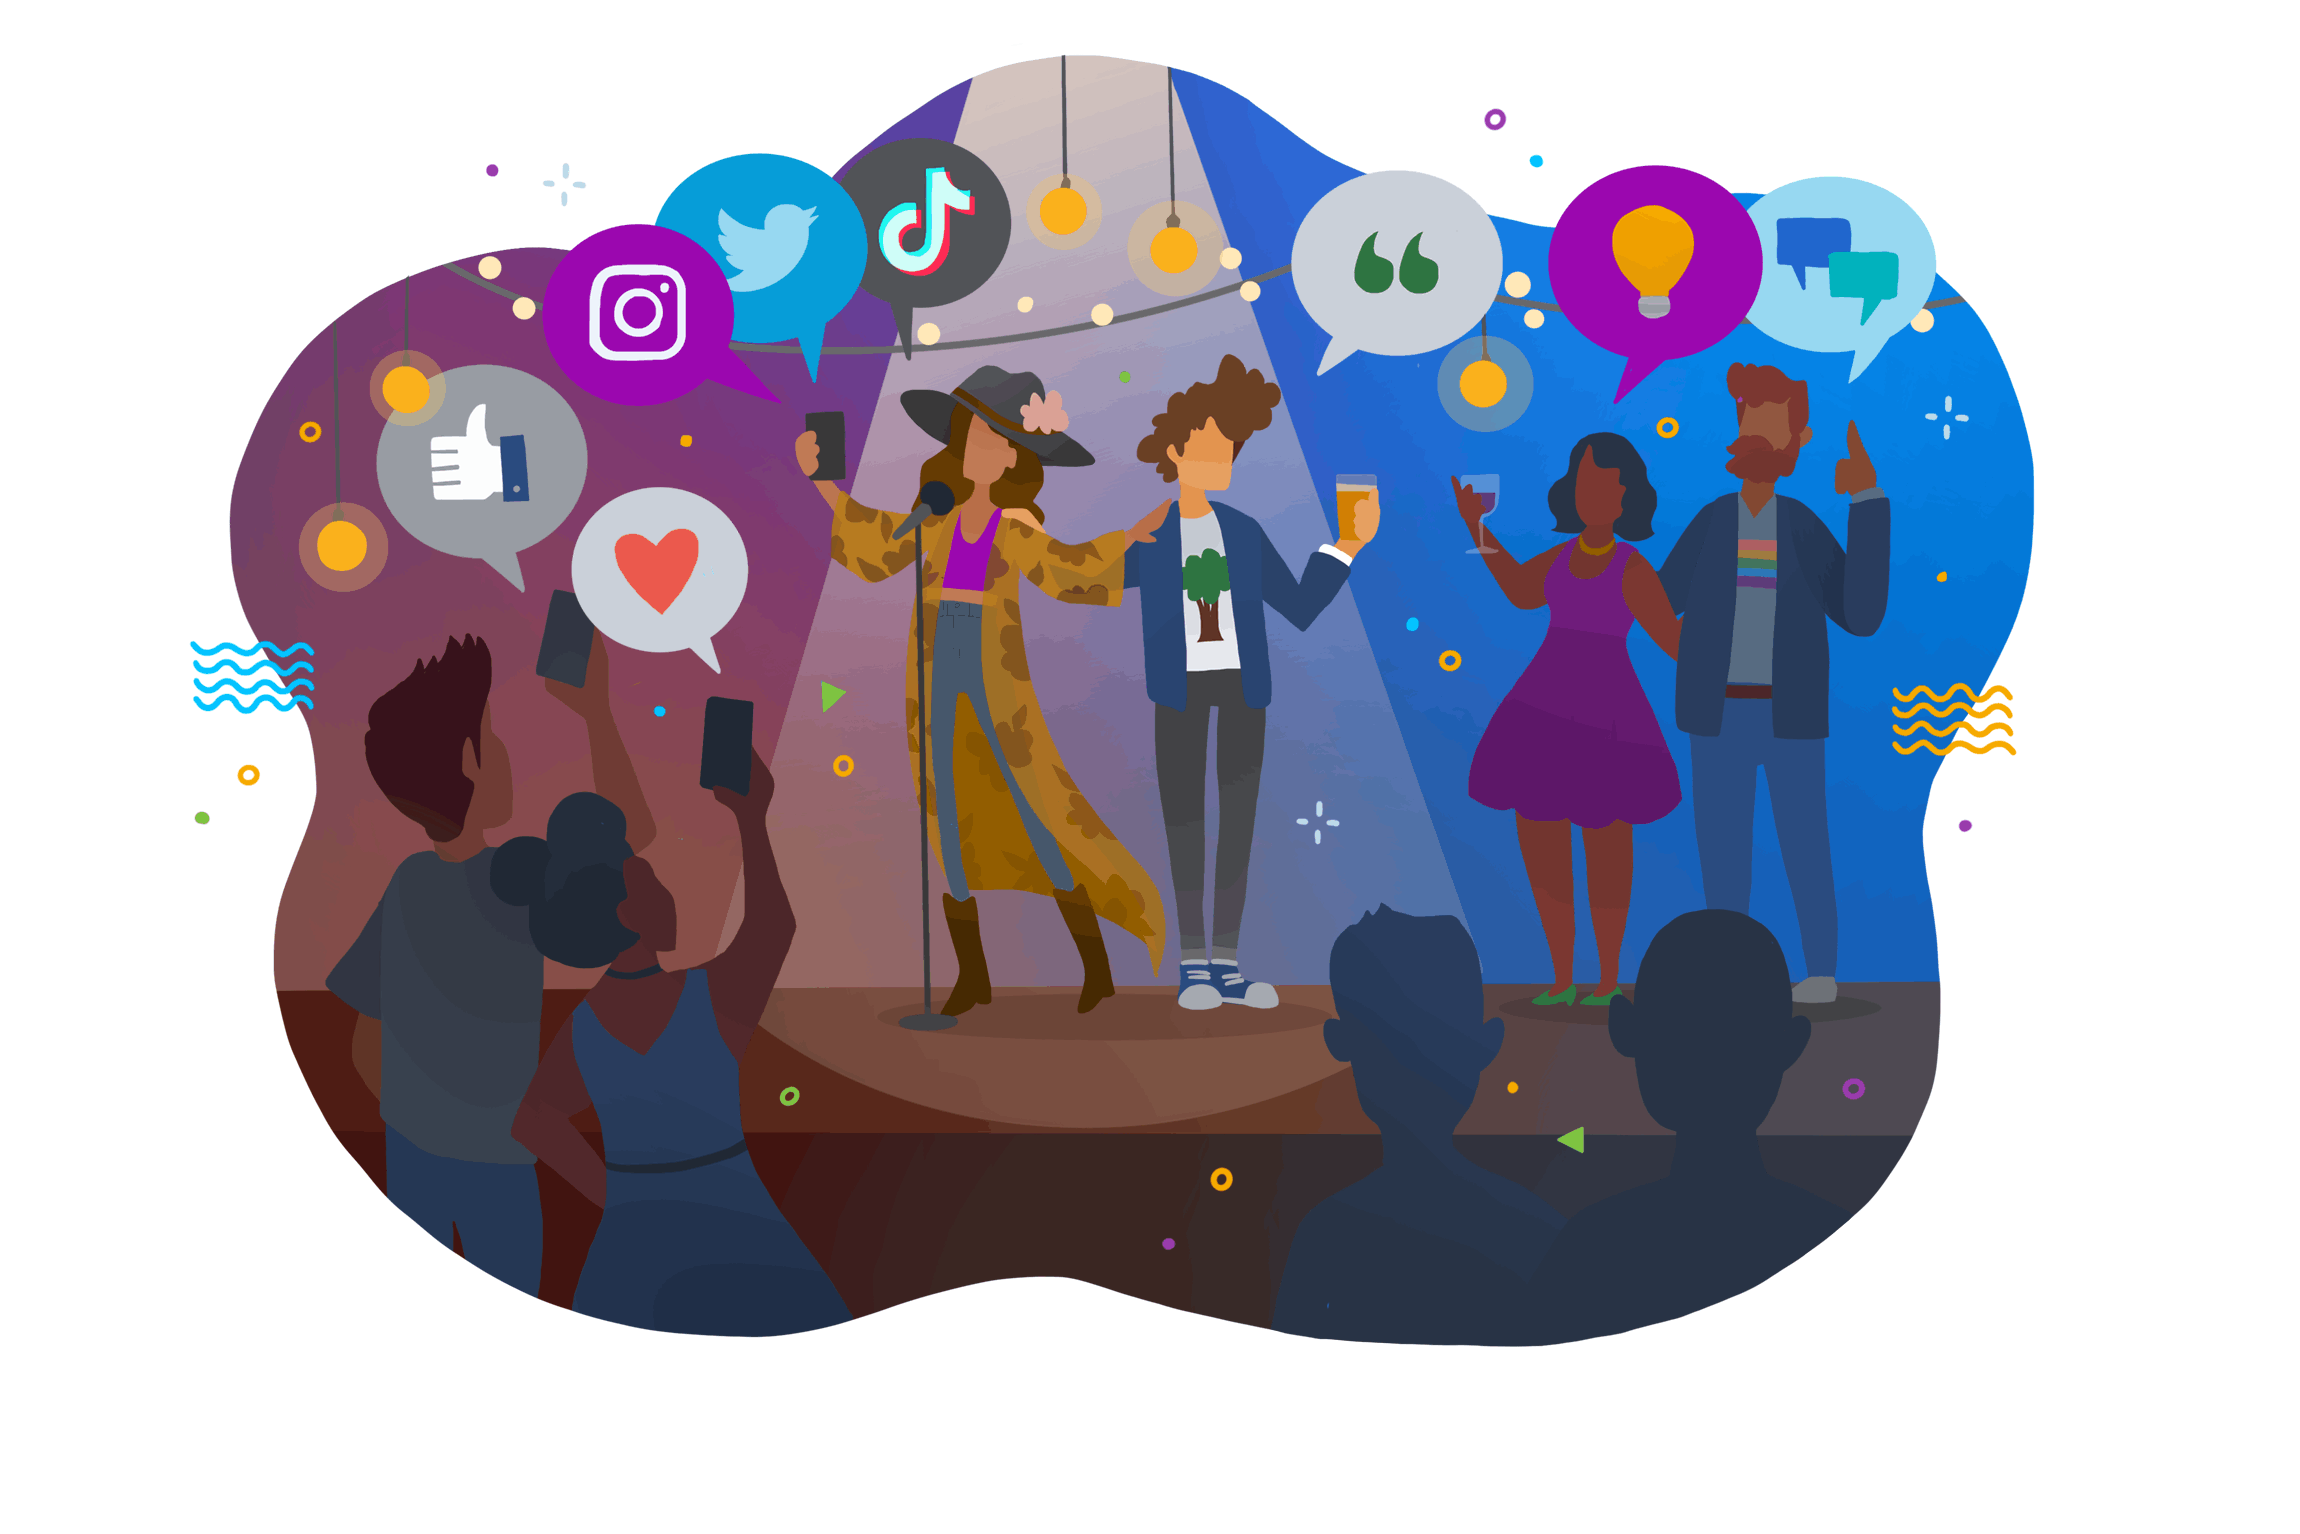 A colourful cartoon illustration of people standing on stage while a crowd cheers them on.